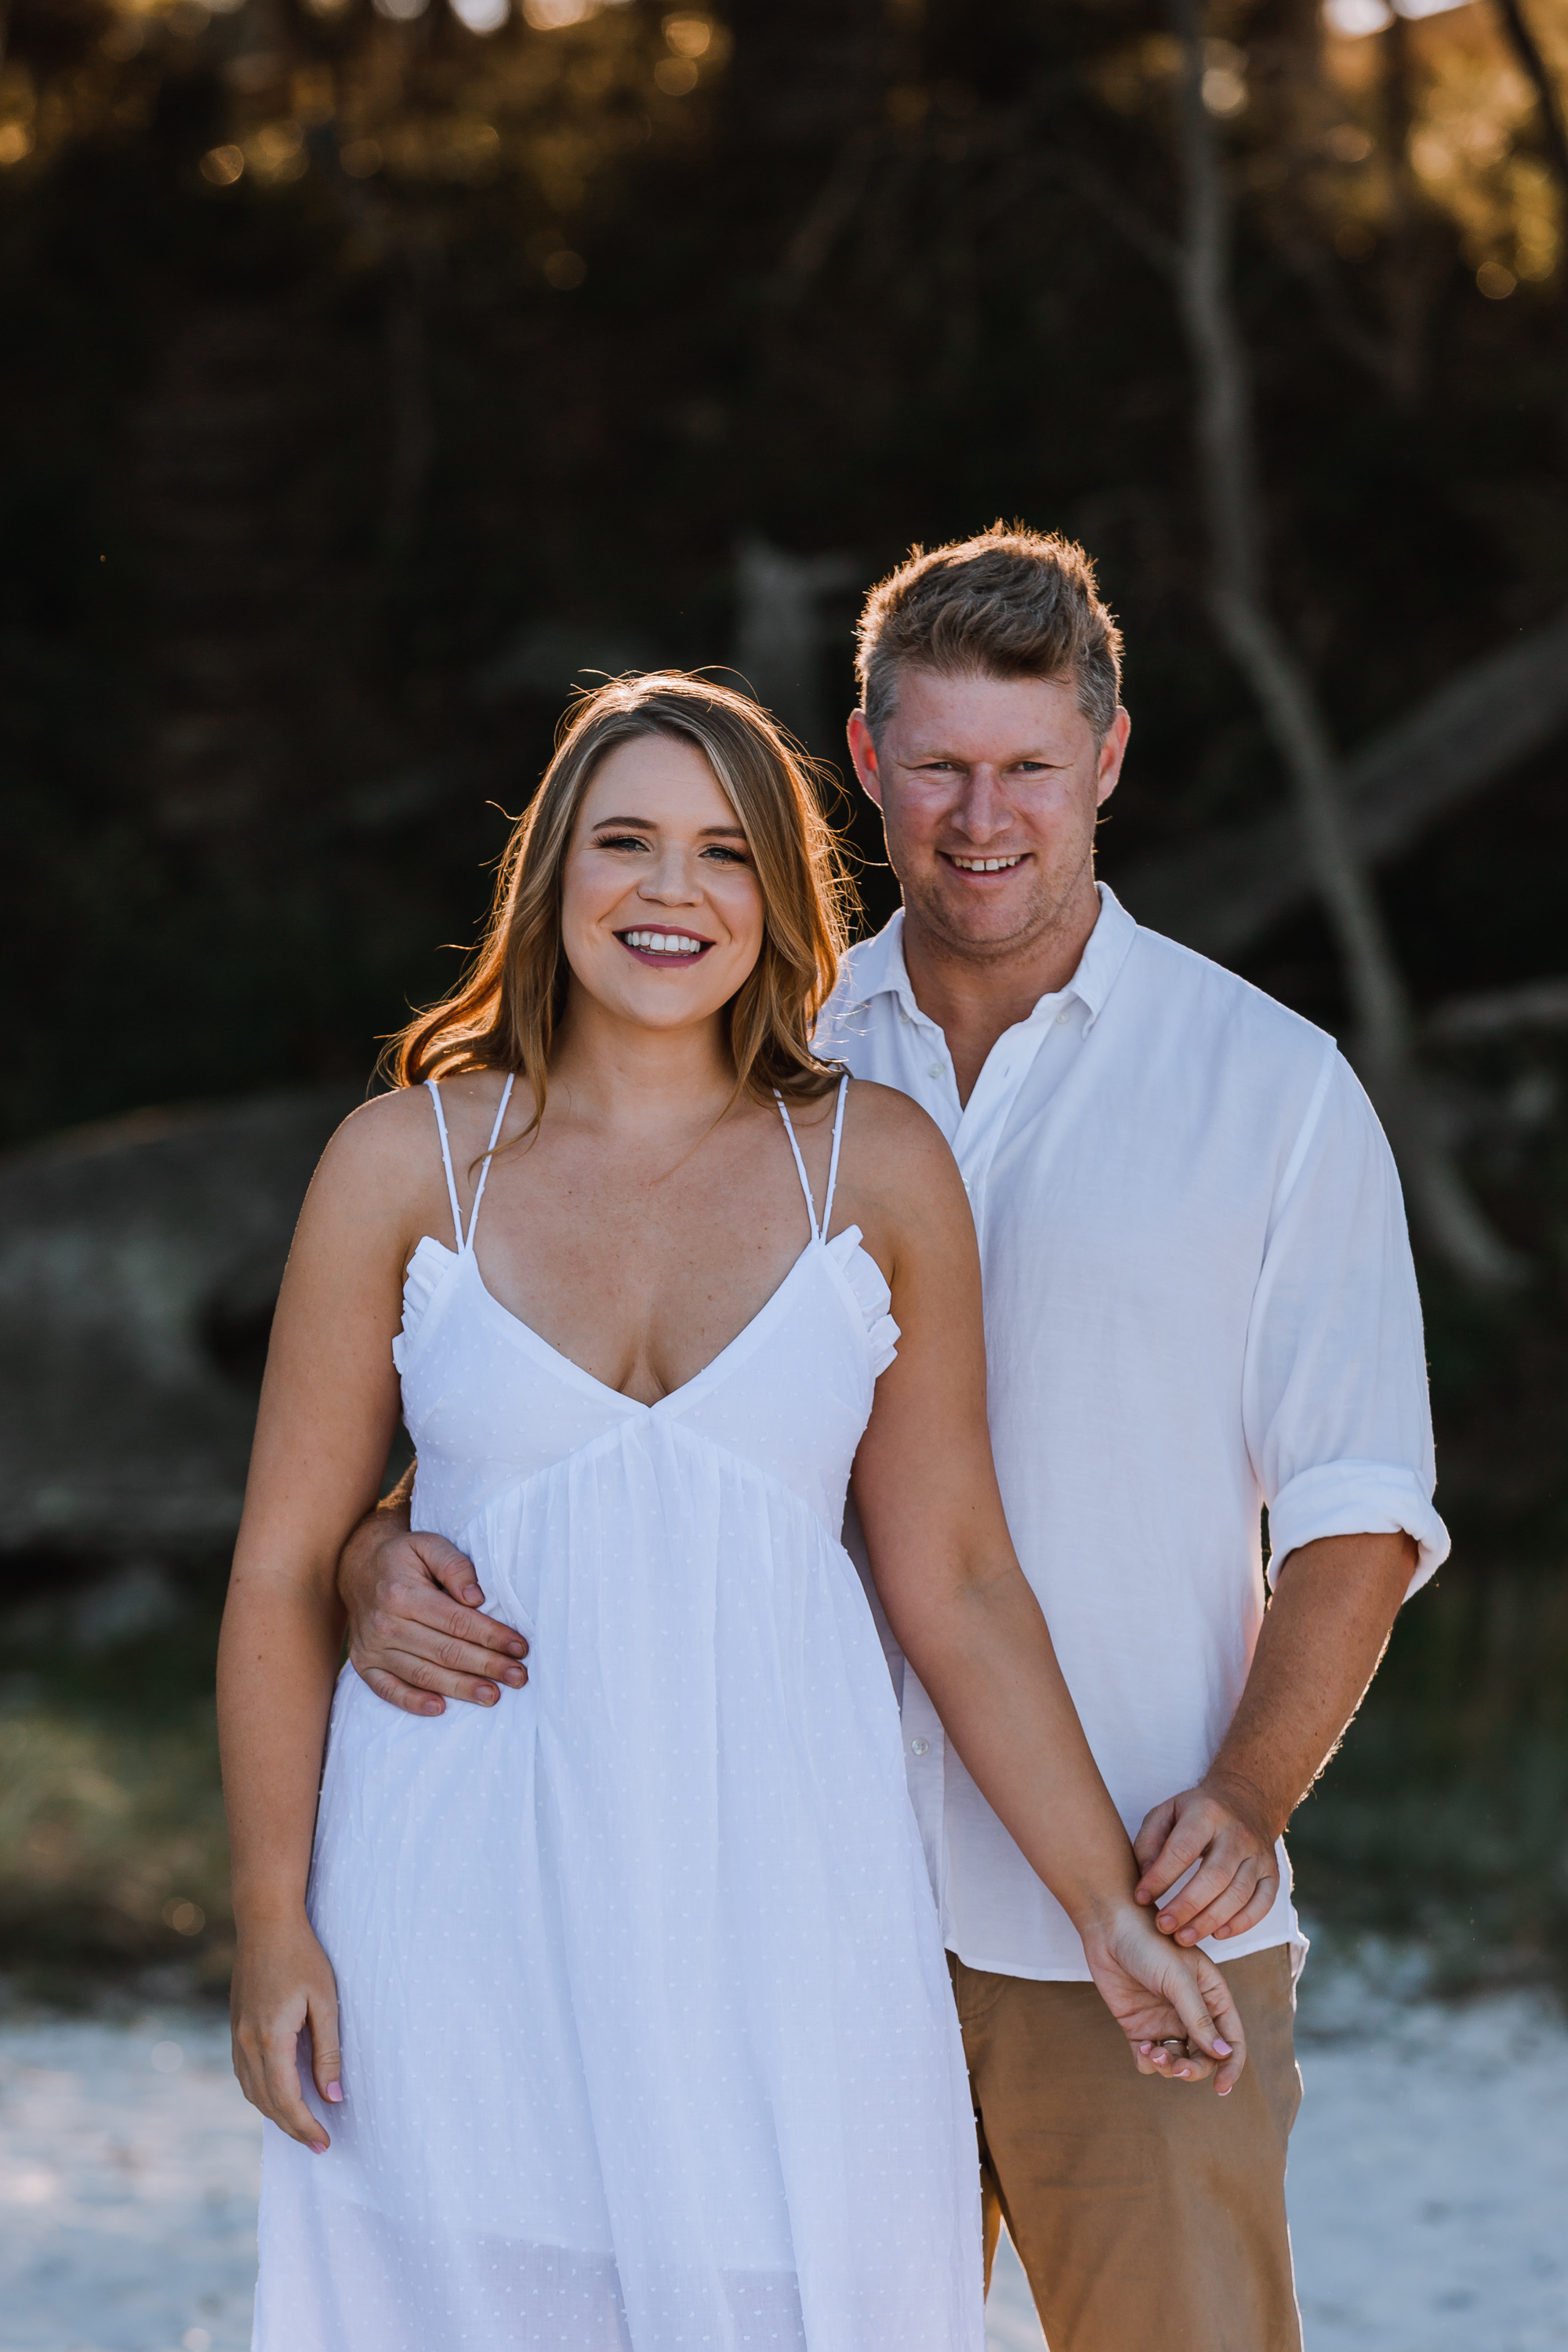 Jay and Hannah Engagement-4.jpg